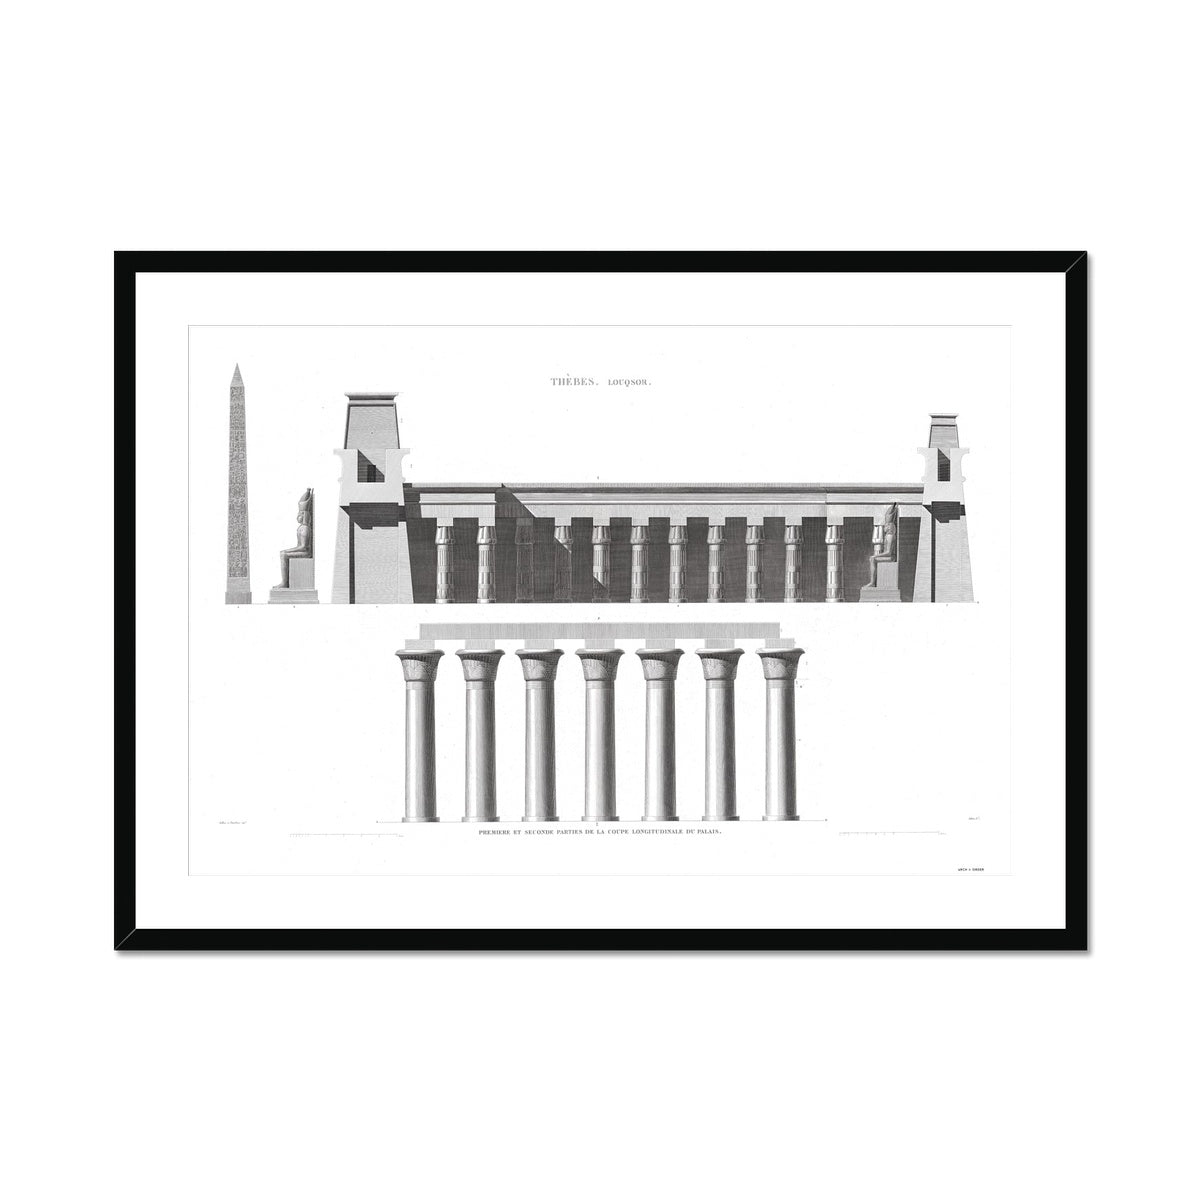 Cross Section of the Palace - Luxor - Thebes Egypt -  Framed & Mounted Print